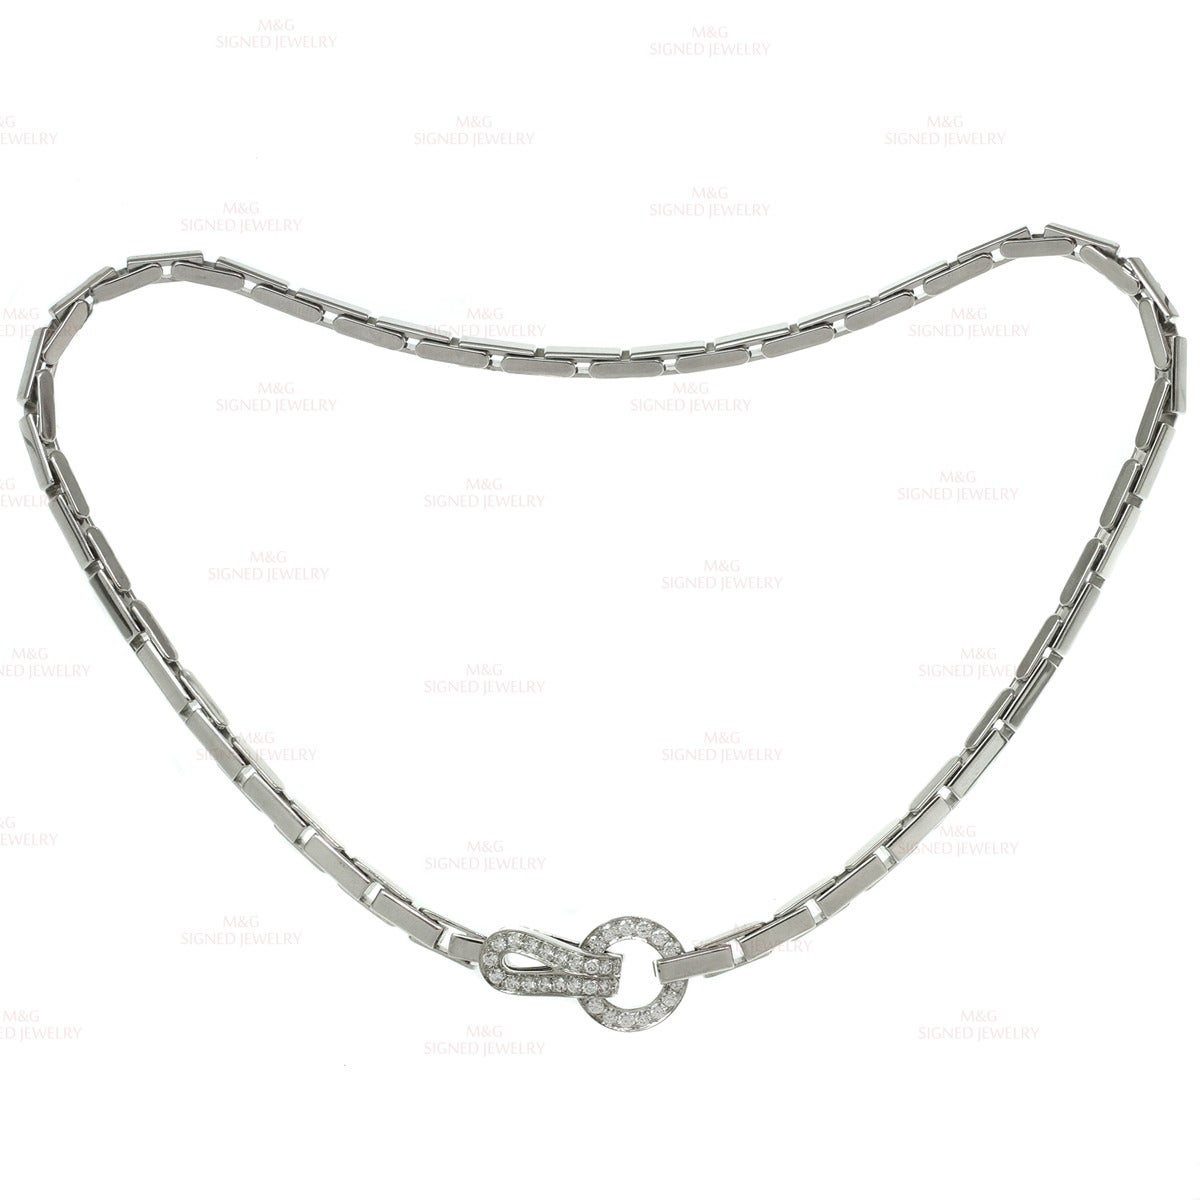 Cartier Agrafe Diamond Gold Necklace And Bracelet At 1stdibs